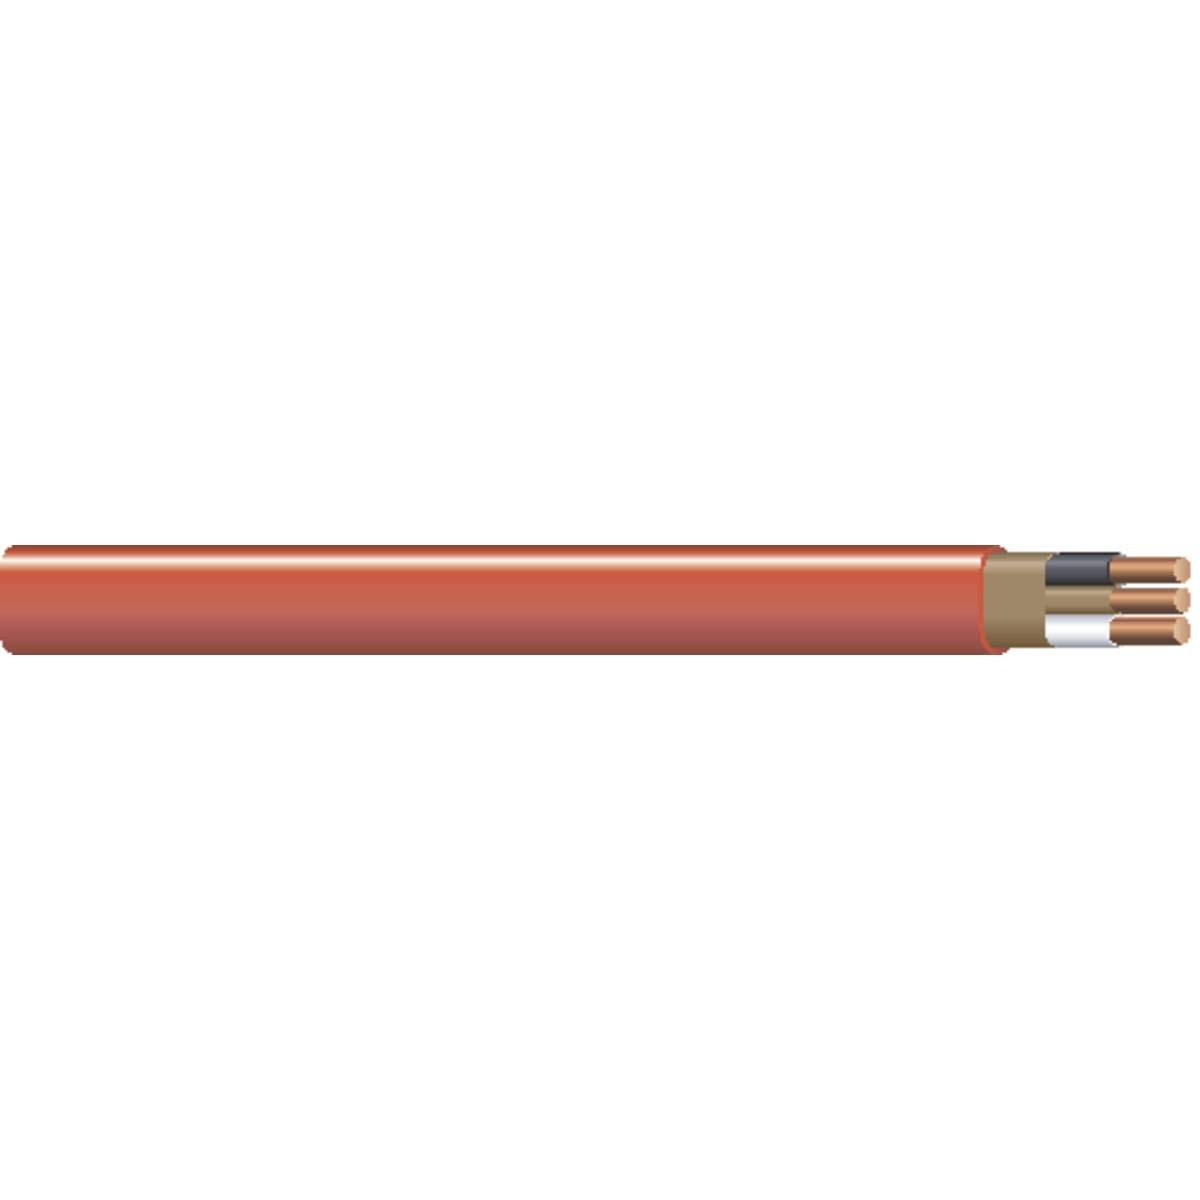 10/2 NM-B, Non-Mettallic, Sheathed Cable, Residential Indoor Wire, Equivalent to Romex (100FT Cut)